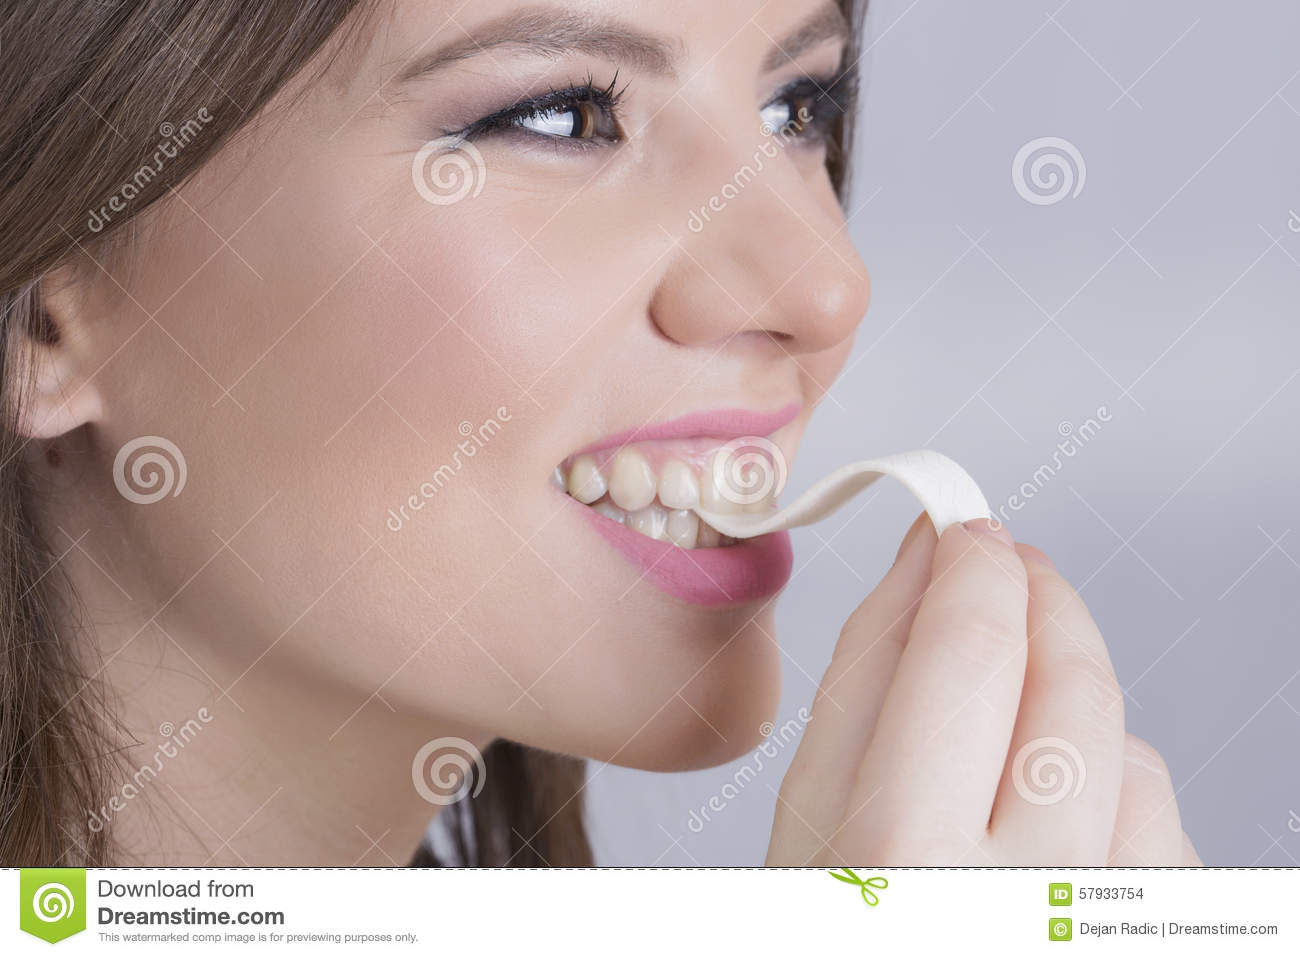 Woman and a gum